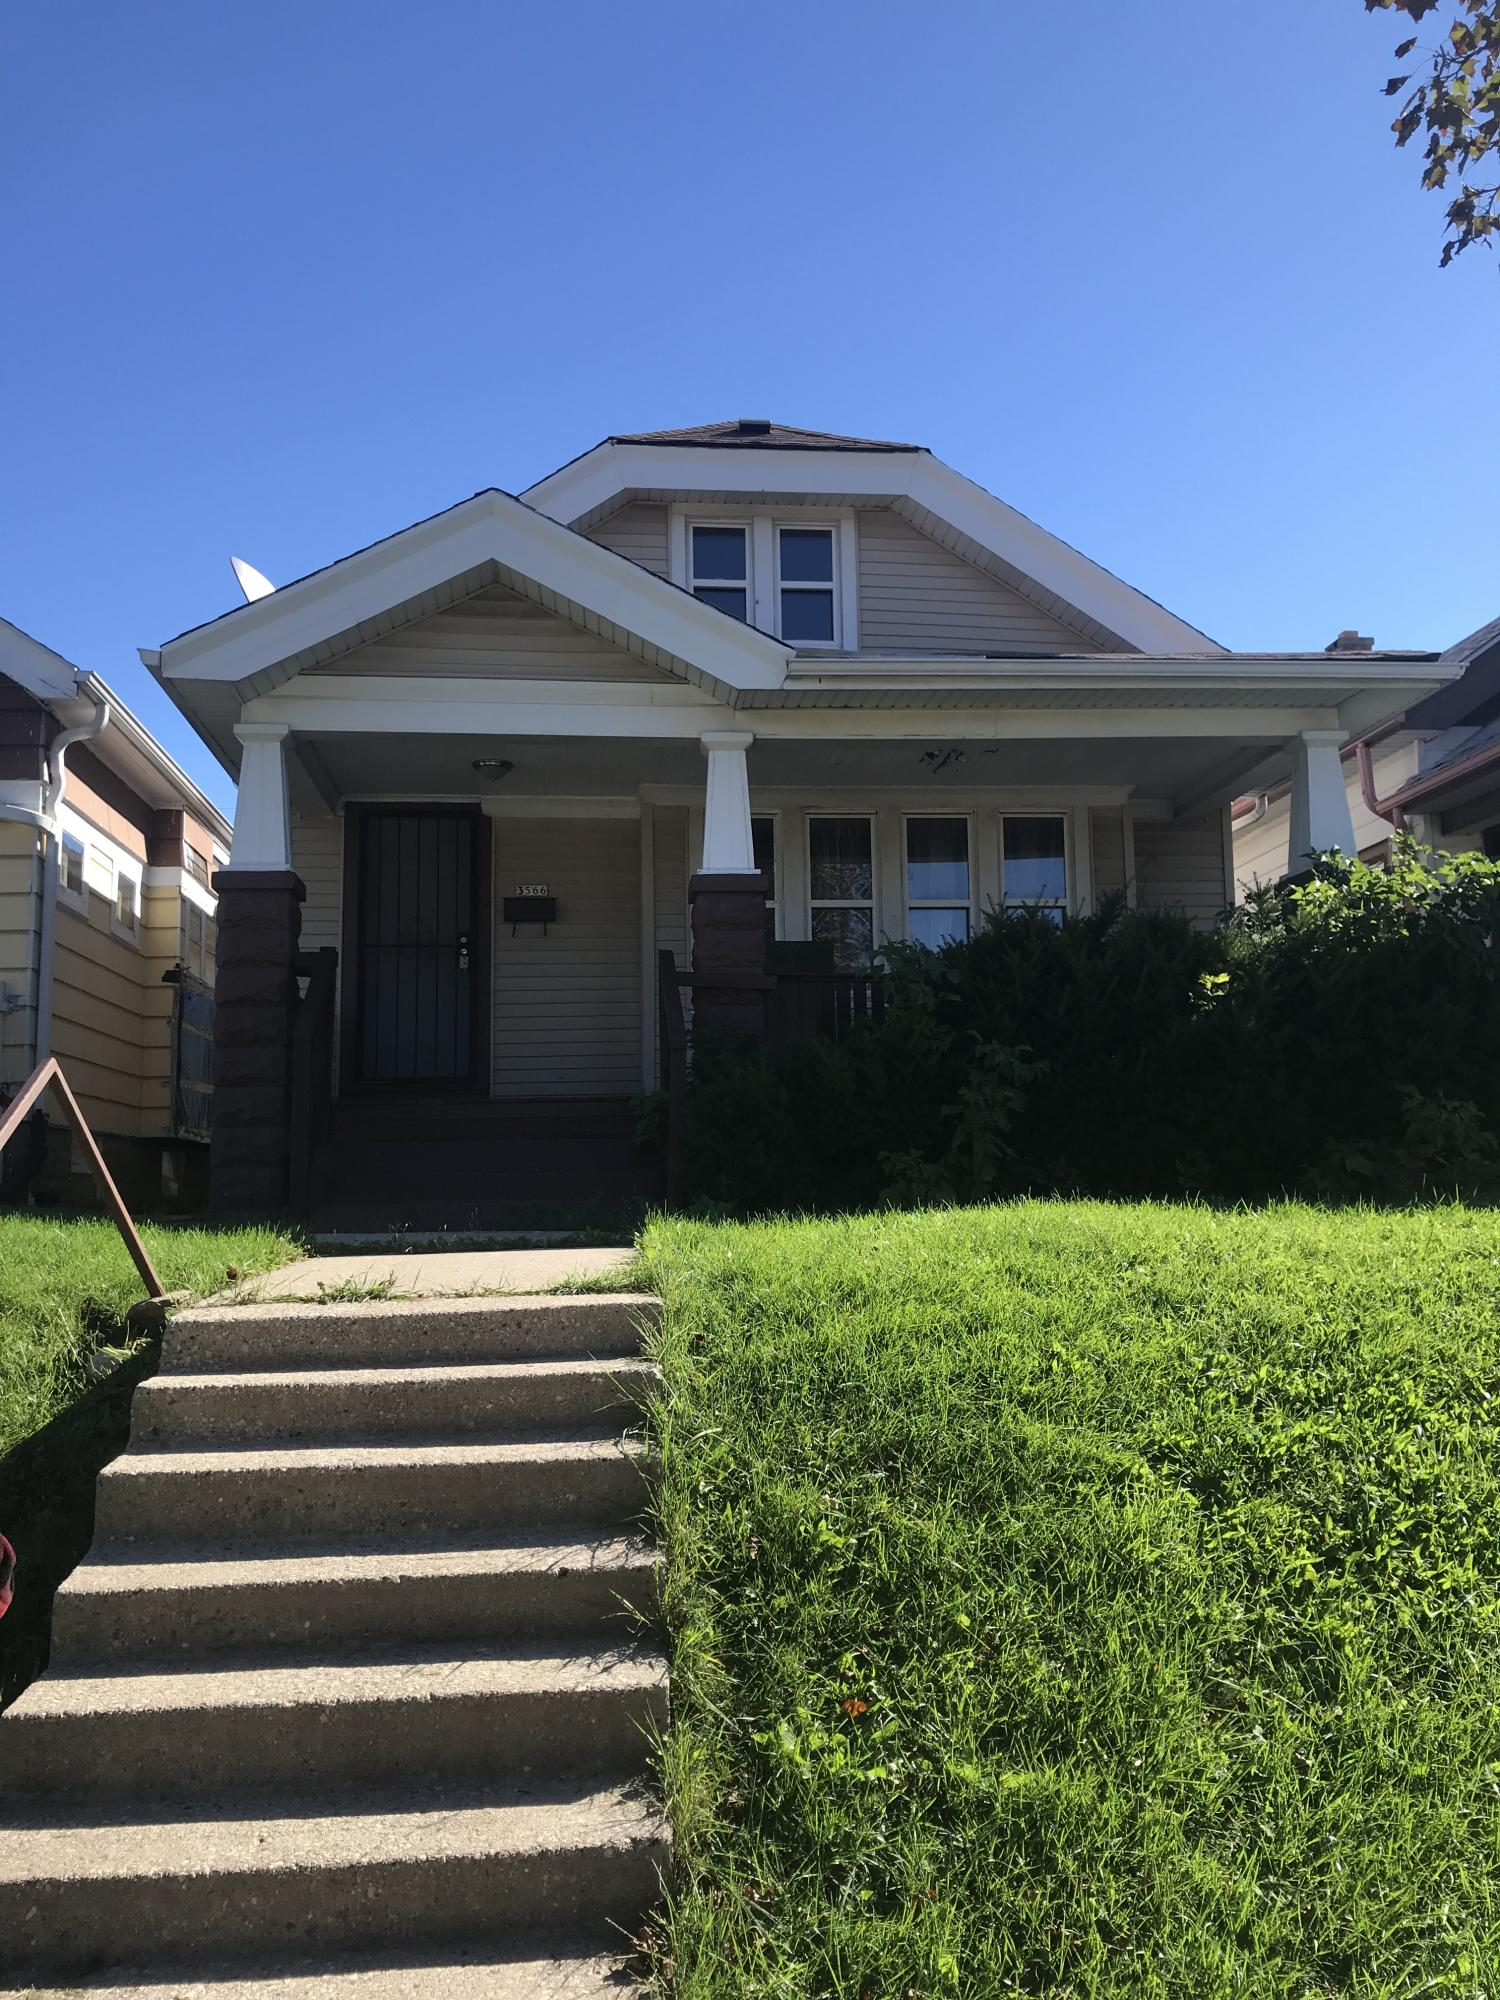 3566 13th St, Milwaukee, Wisconsin 53206, 4 Bedrooms Bedrooms, ,1 BathroomBathrooms,Single-Family,For Sale,13th St,1619496